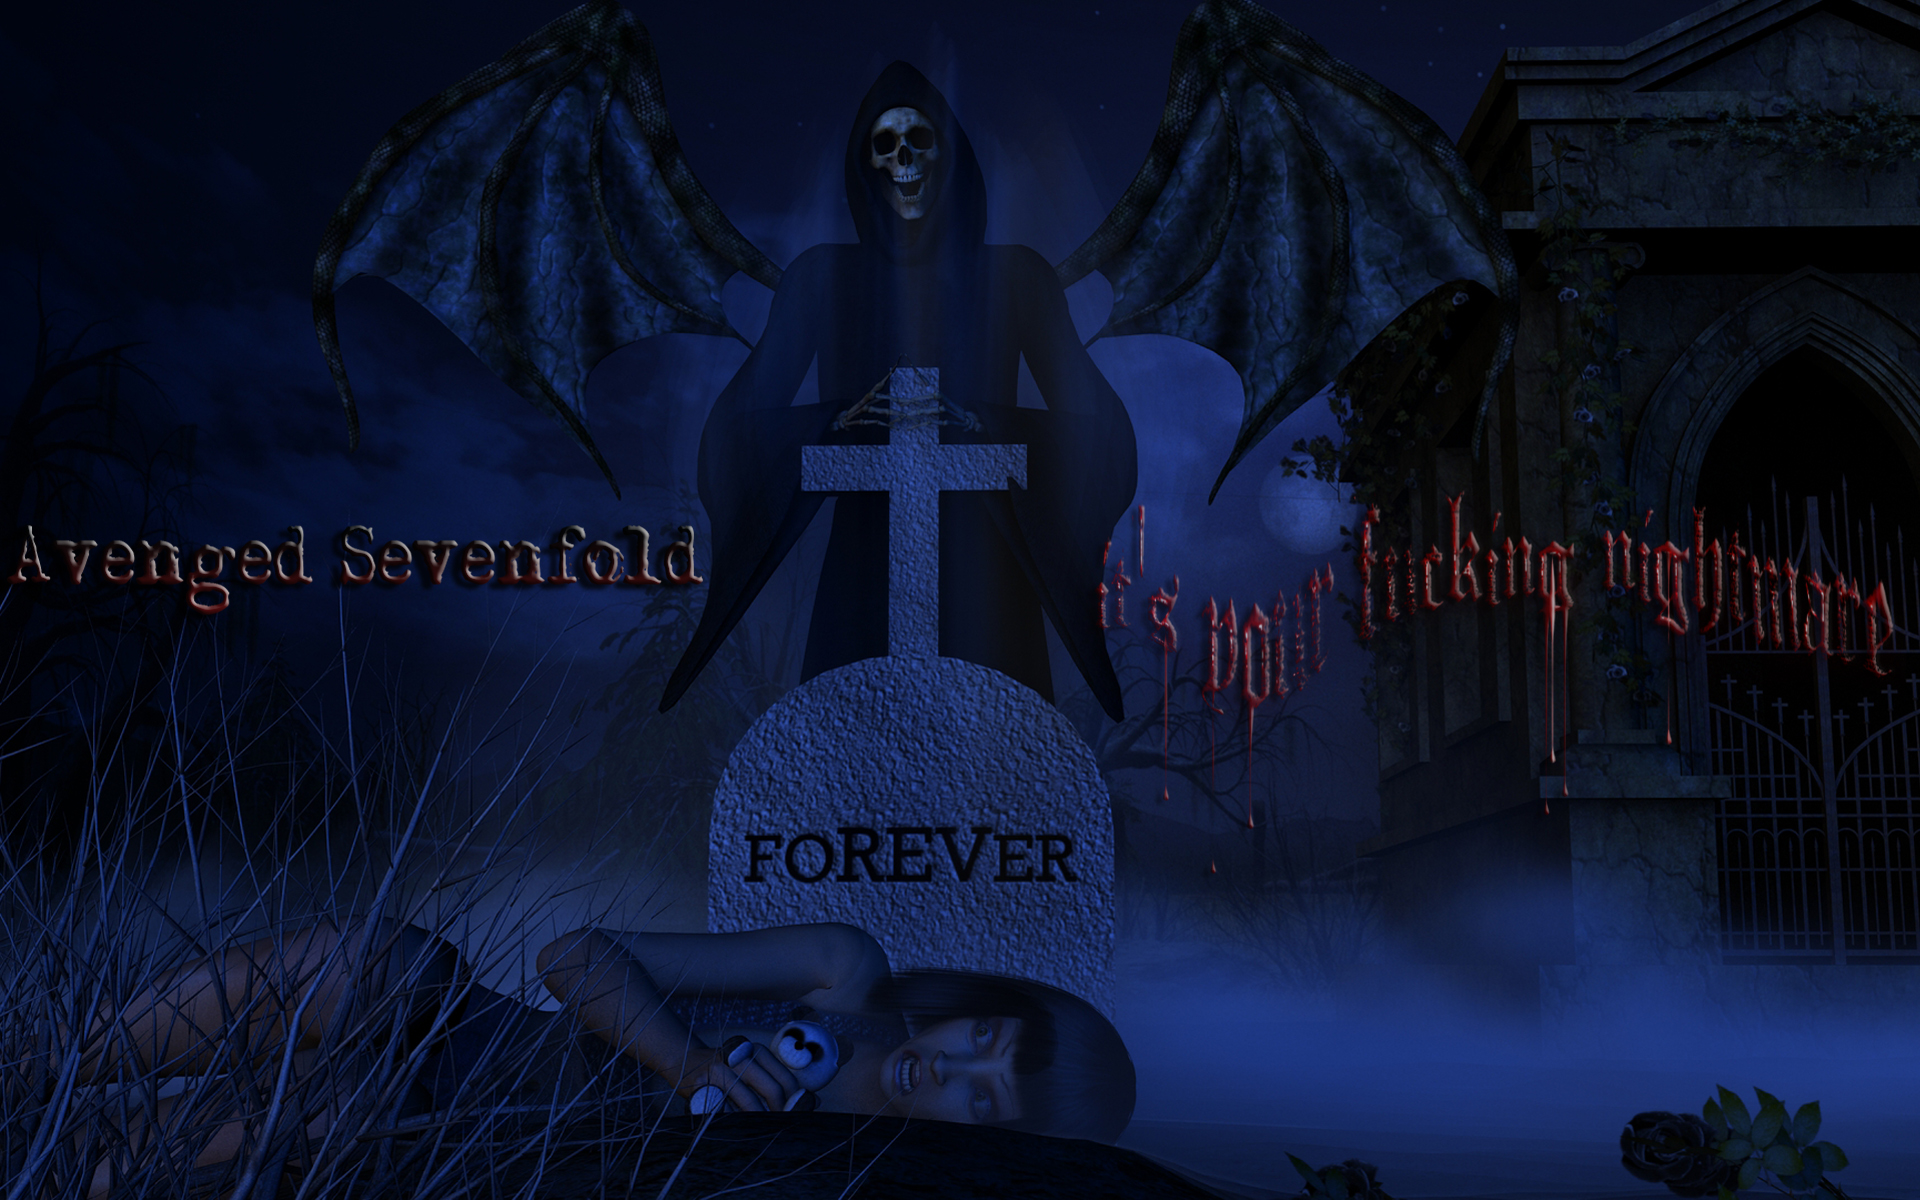 Avenged sevenfold full hd wallpaper and background image 1920x1200 music avenged sevenfold heavy metal metal hard rock nu metal wallpaper voltagebd Images